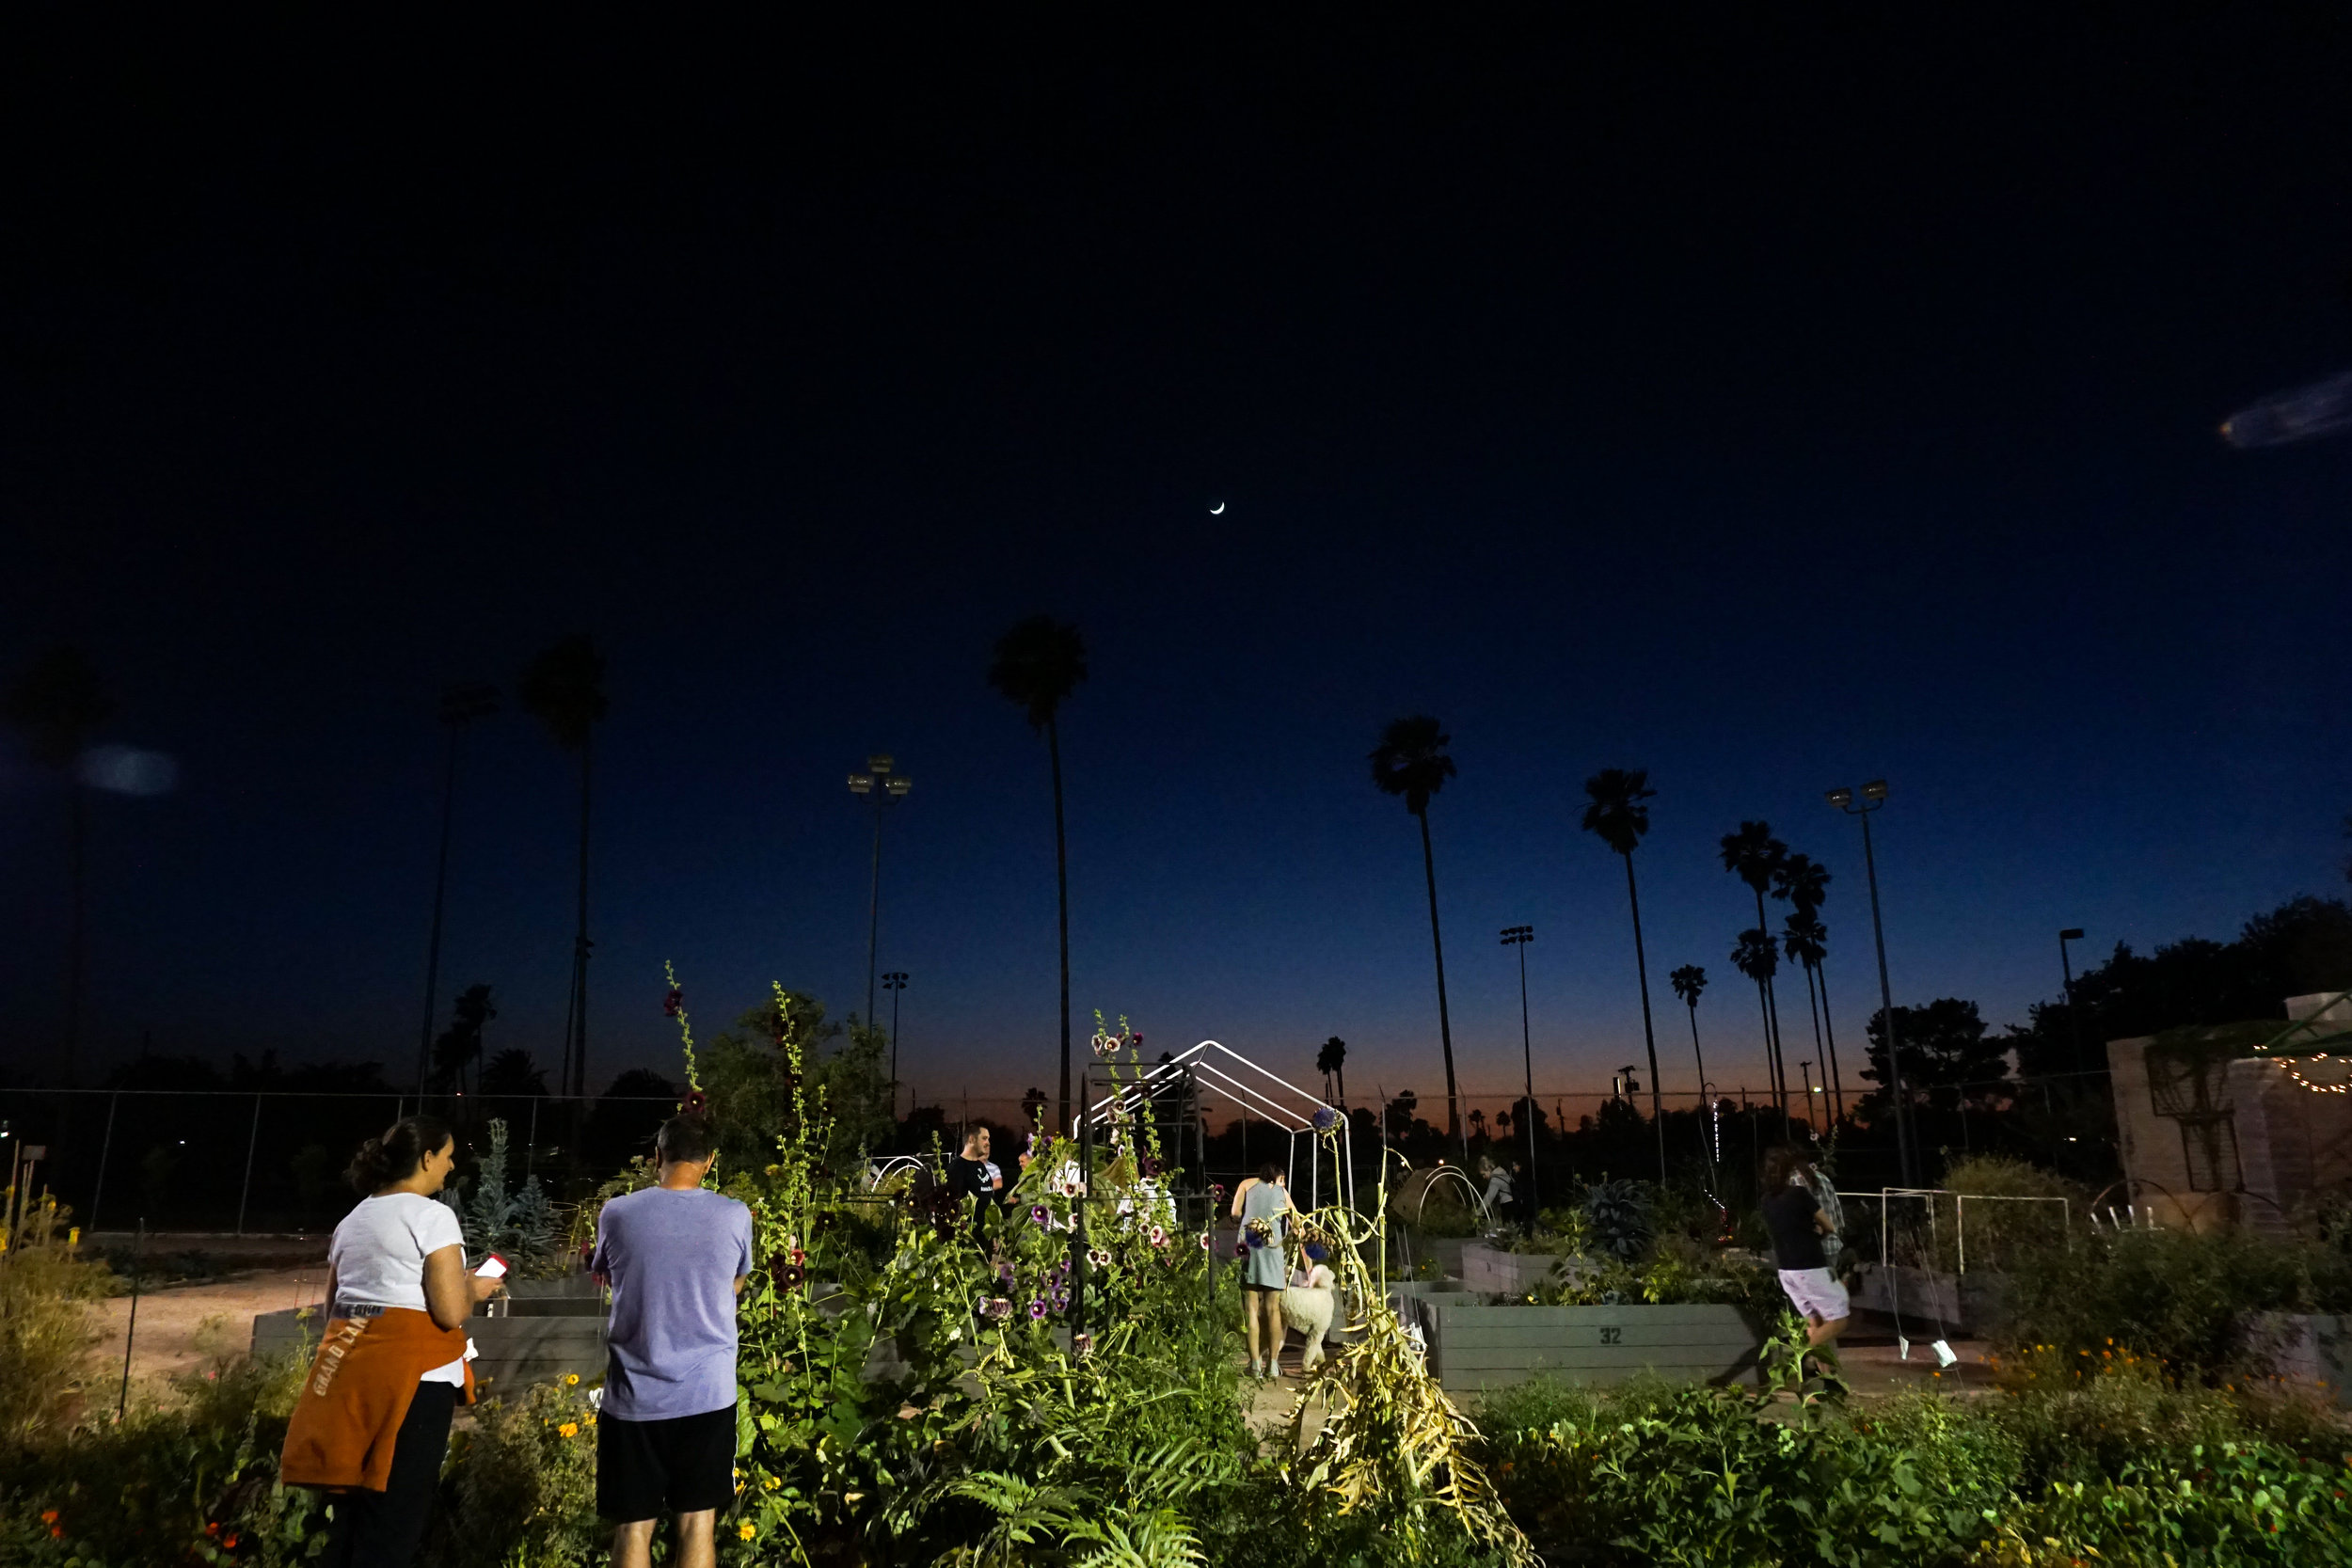 Garden Ecologies - photo by Rebecca Greenberg